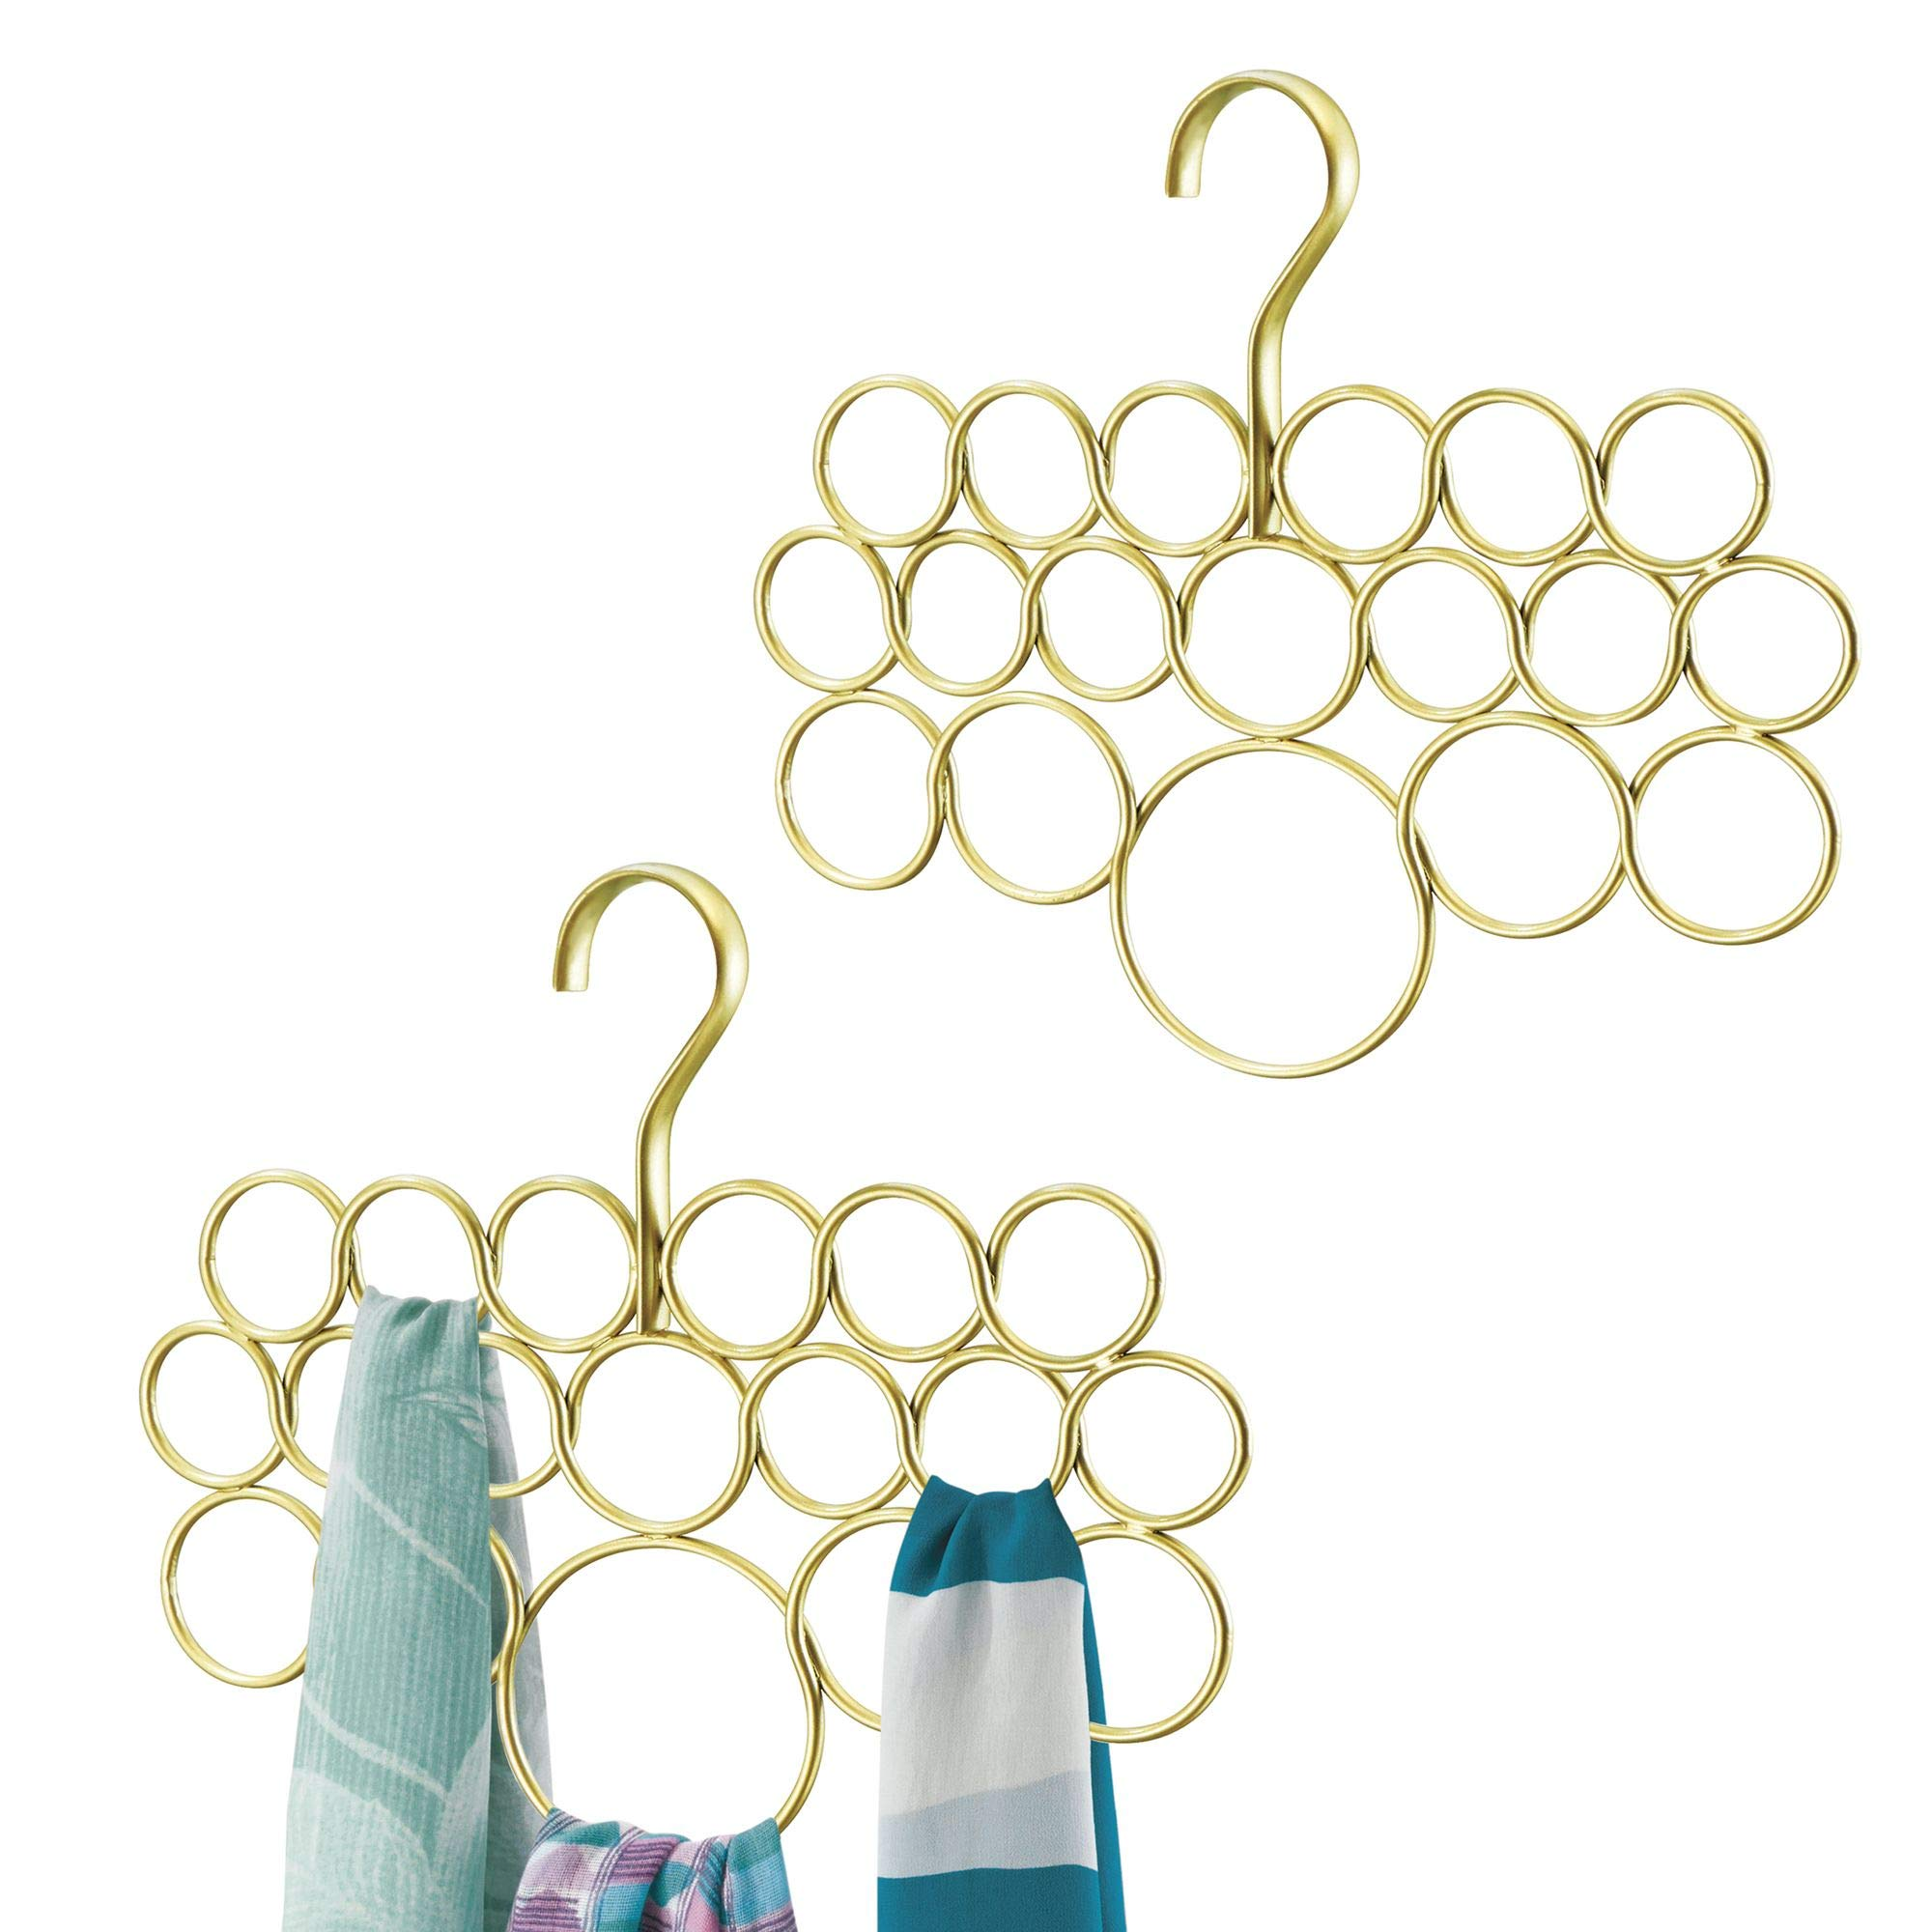 mDesign Closet Wire Metal Scarf Hanger Storage Organizer for Organizing Scarves, Ties, Belts, Shawls pashminas - Pack of 2, Gold/Brass